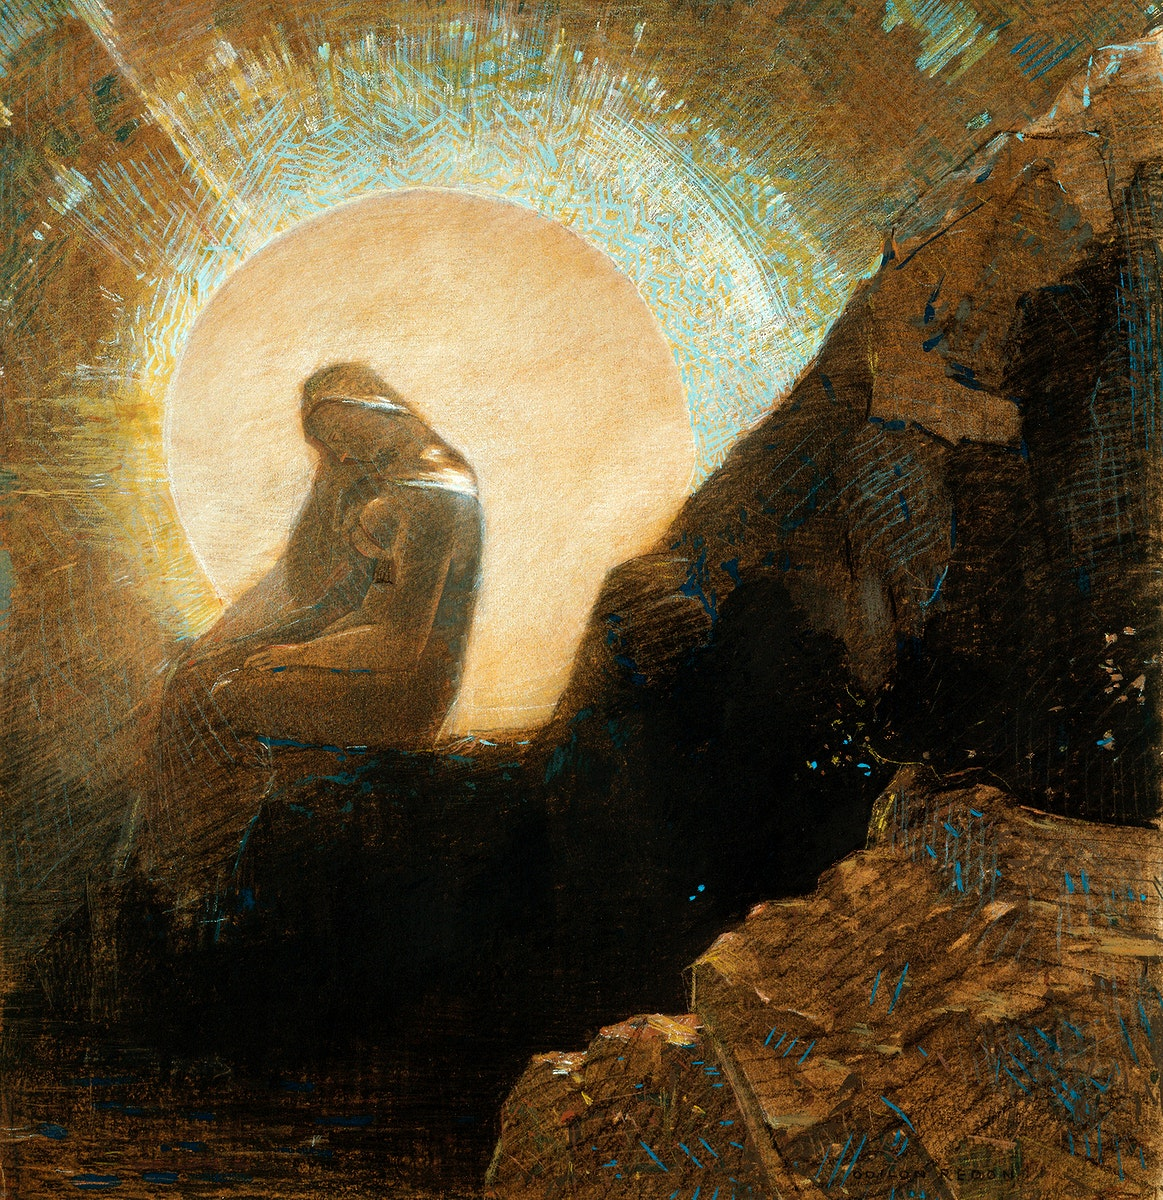 Melancholy (1876) by Odilon Redon. Original from the Art Institute of Chicago. Digitally enhanced by rawpixel.